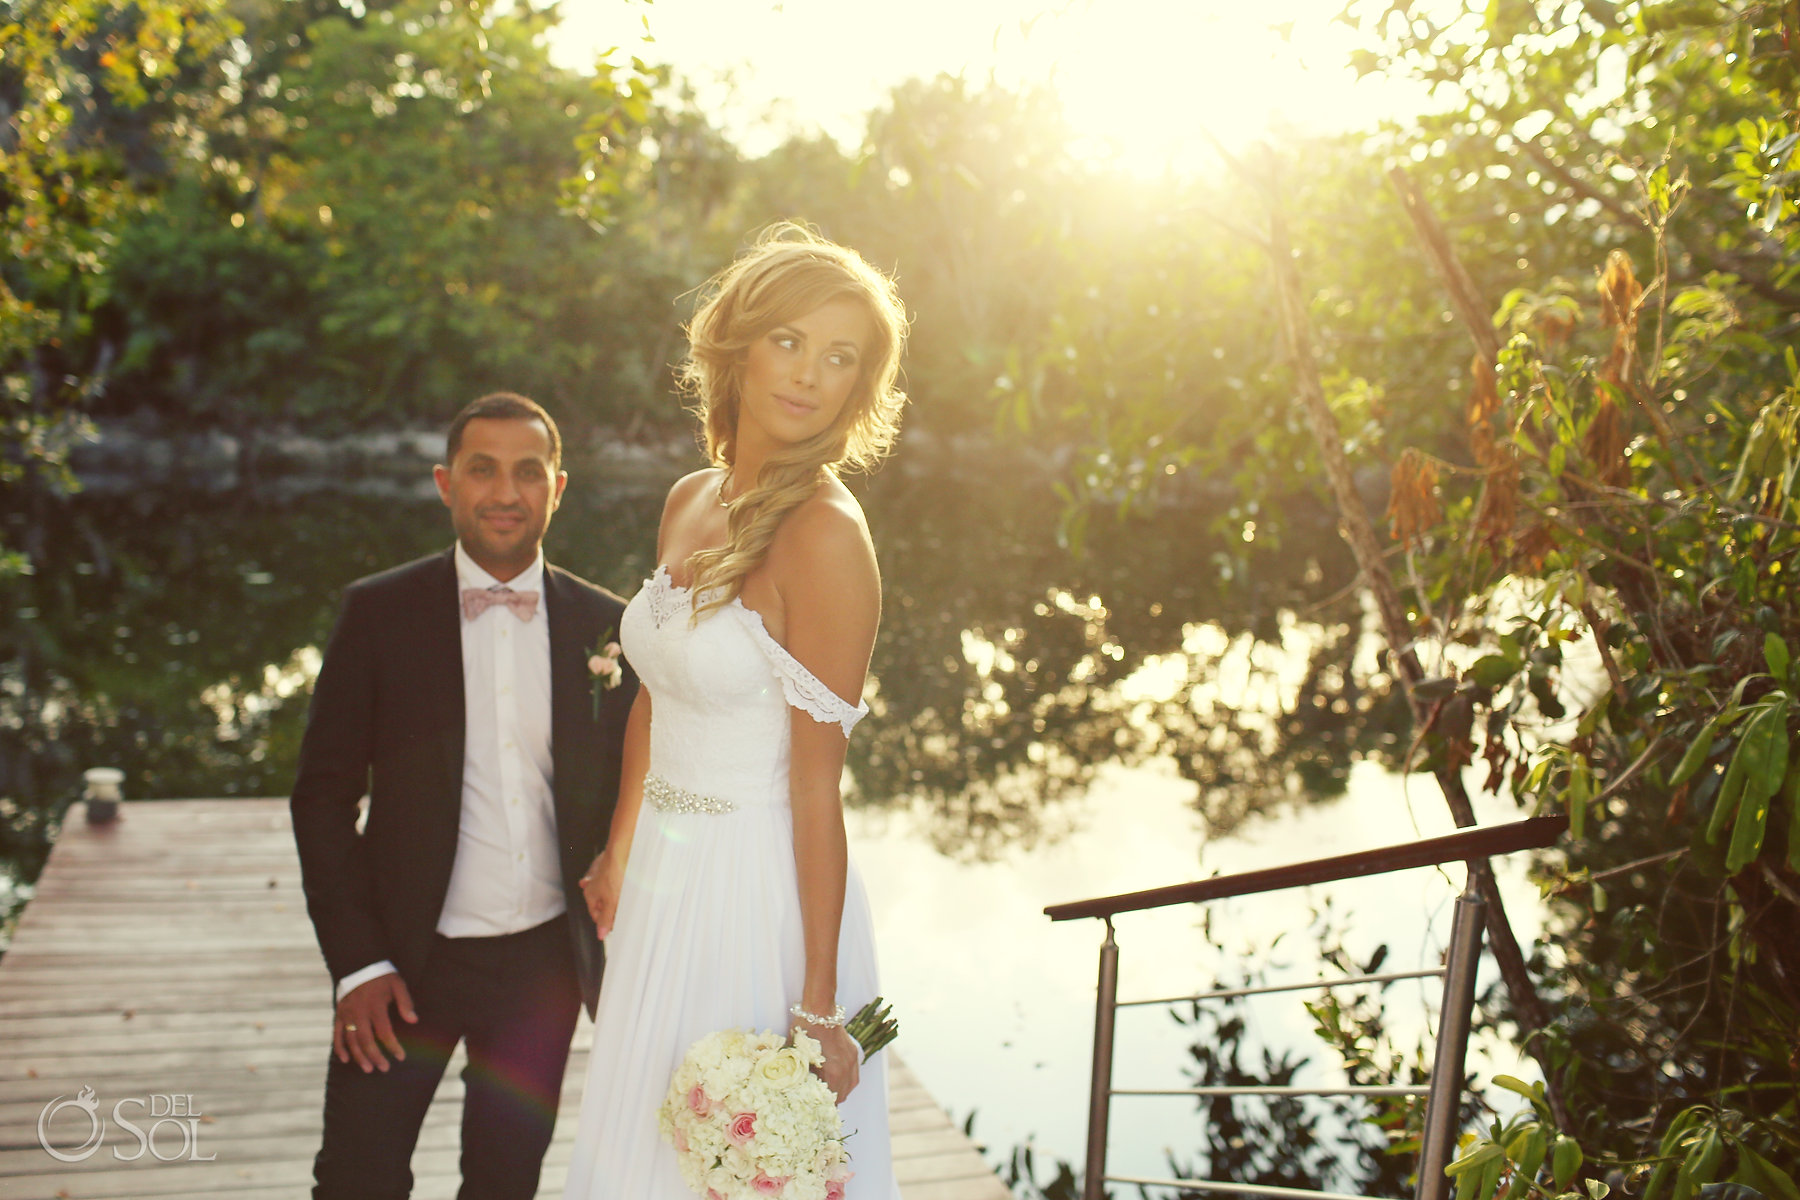 Sunset backlight bride and groom Sunset backlight bride and groom portrait at cenote Best Elopement Locations Mexico